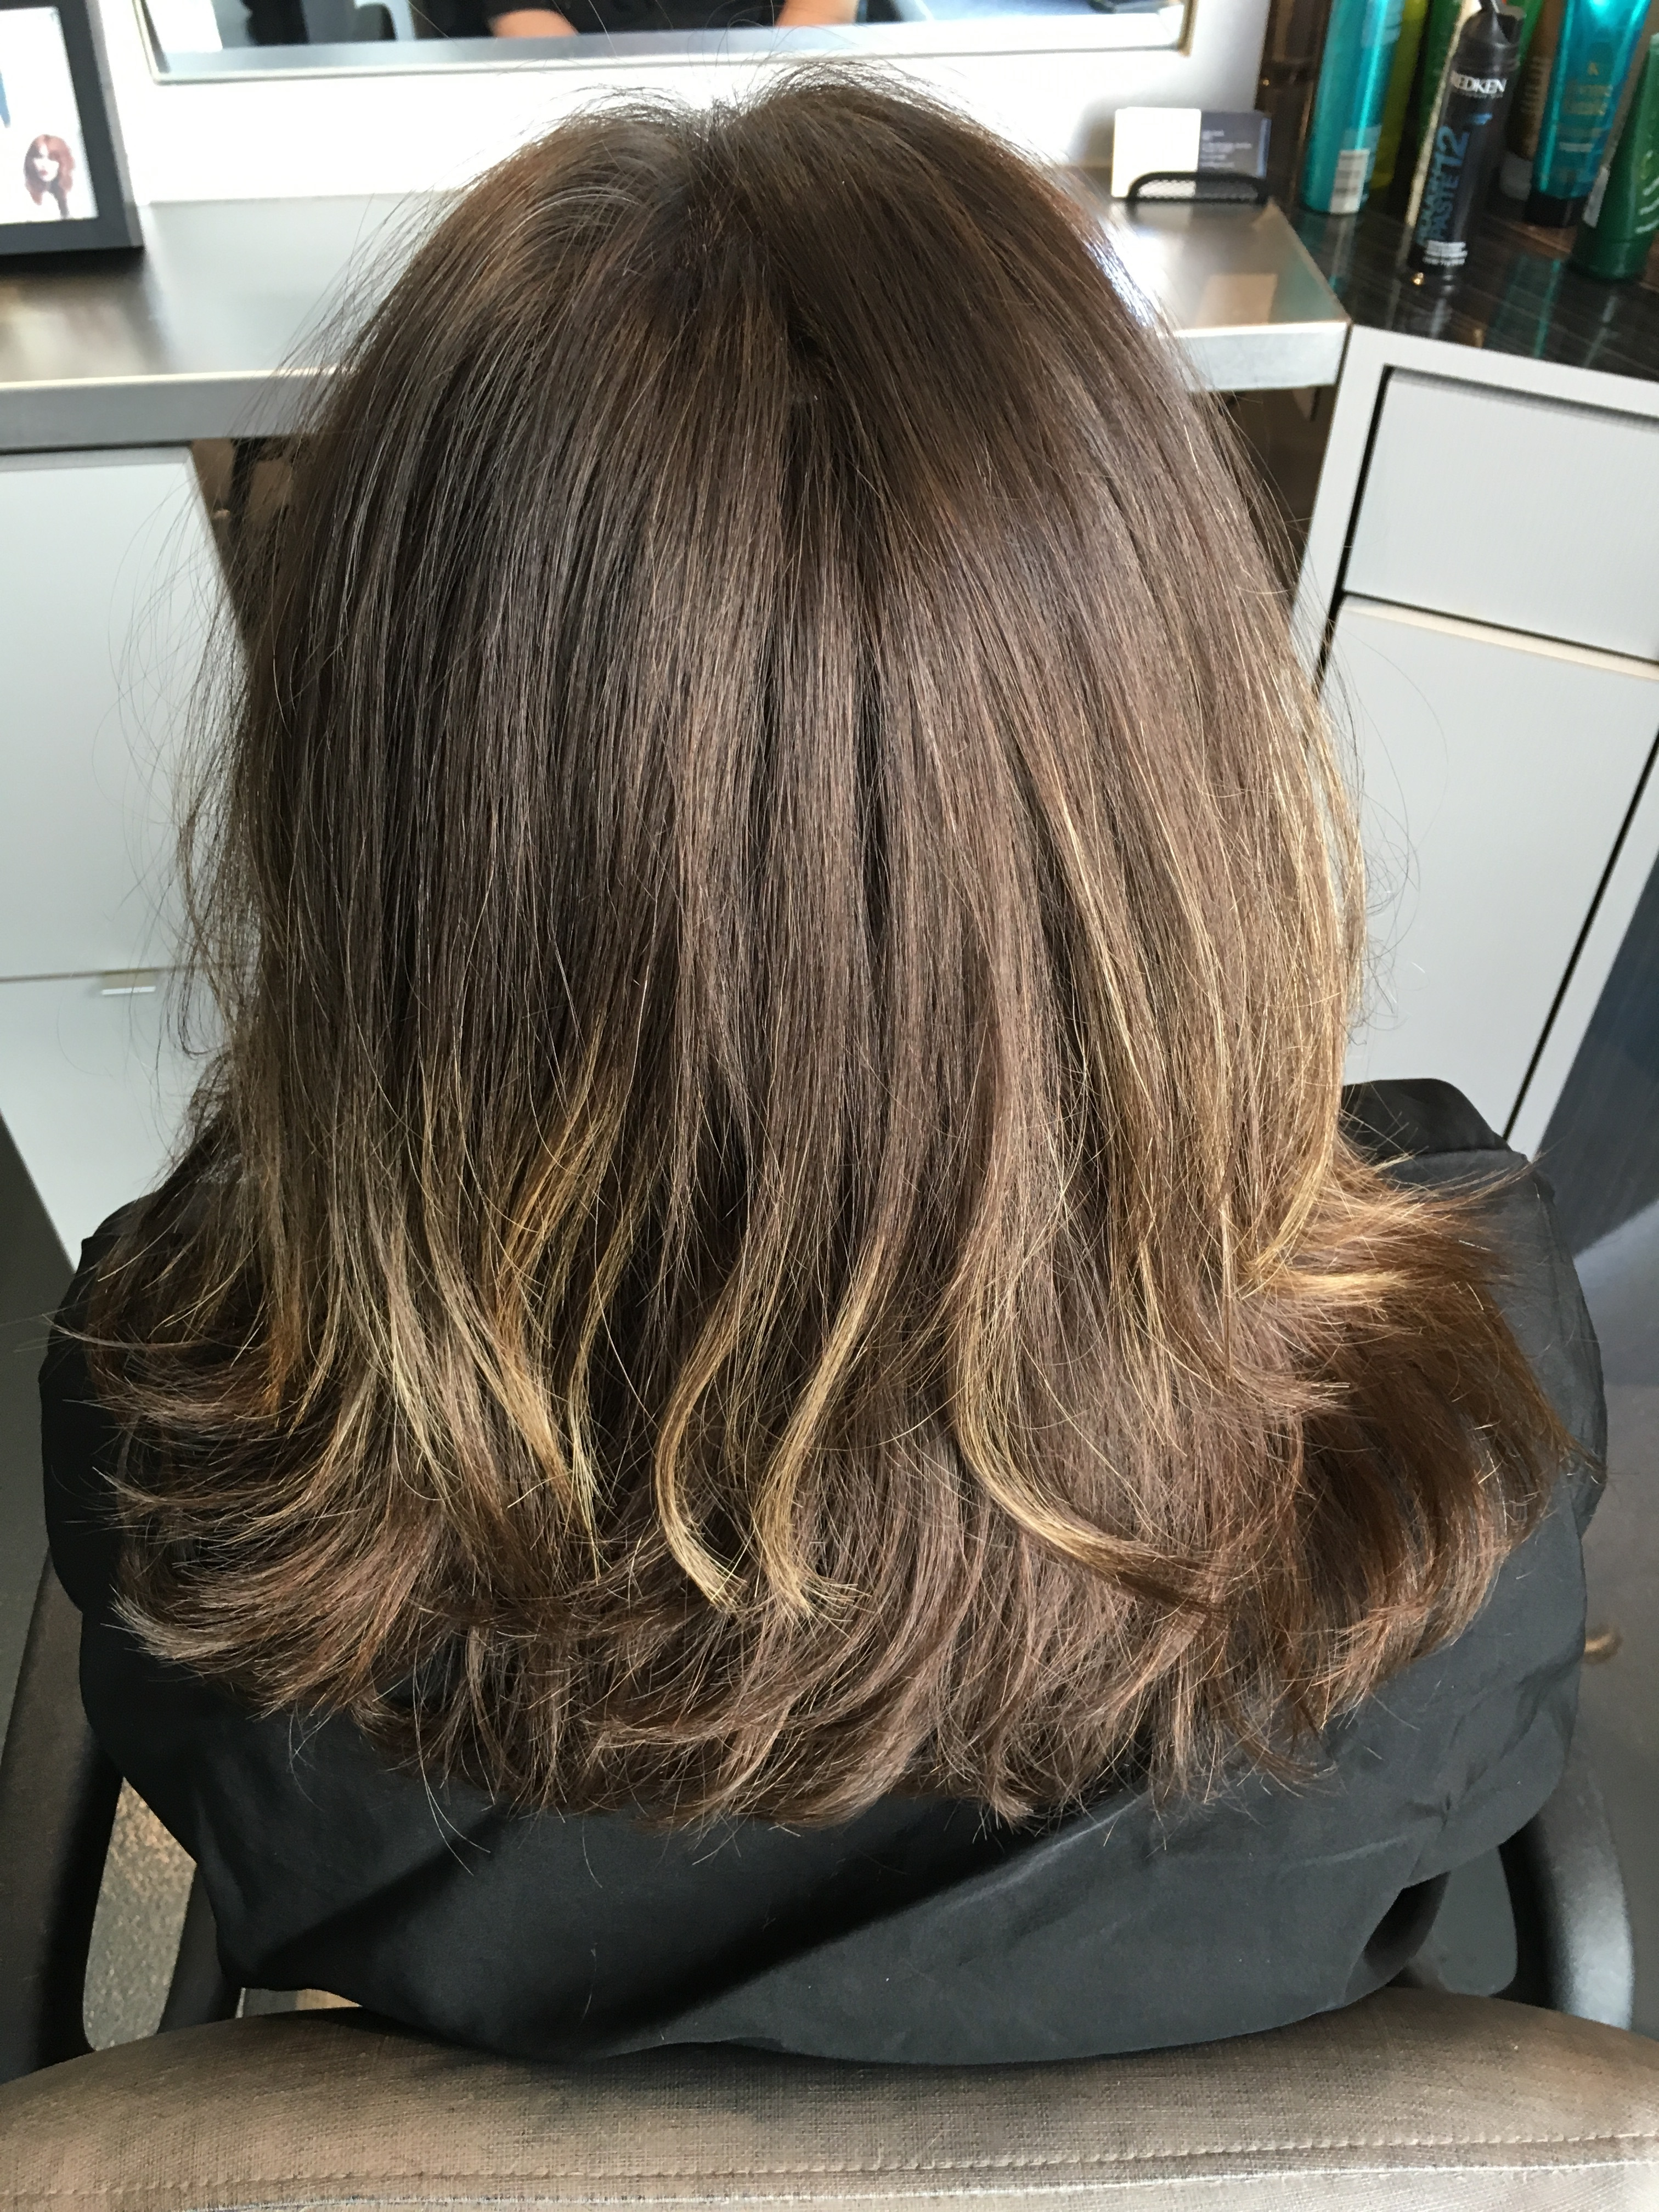 Best Hair Salon In Chicago Make An Appointmentafter Big Haircut